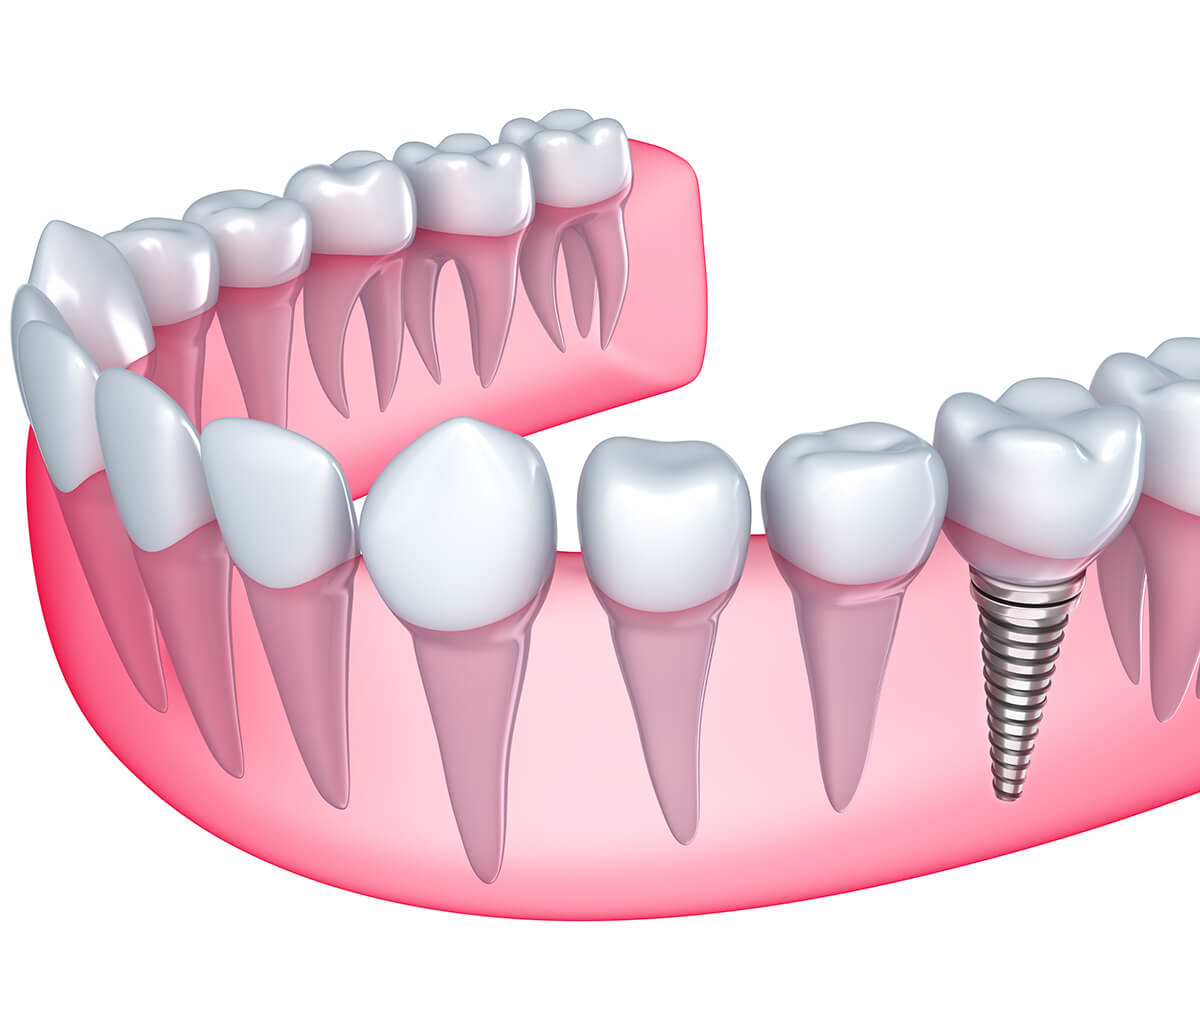 Where Can I Find a Dentist, Who Specializes in Dental Implants near Scottsdale, AZ?